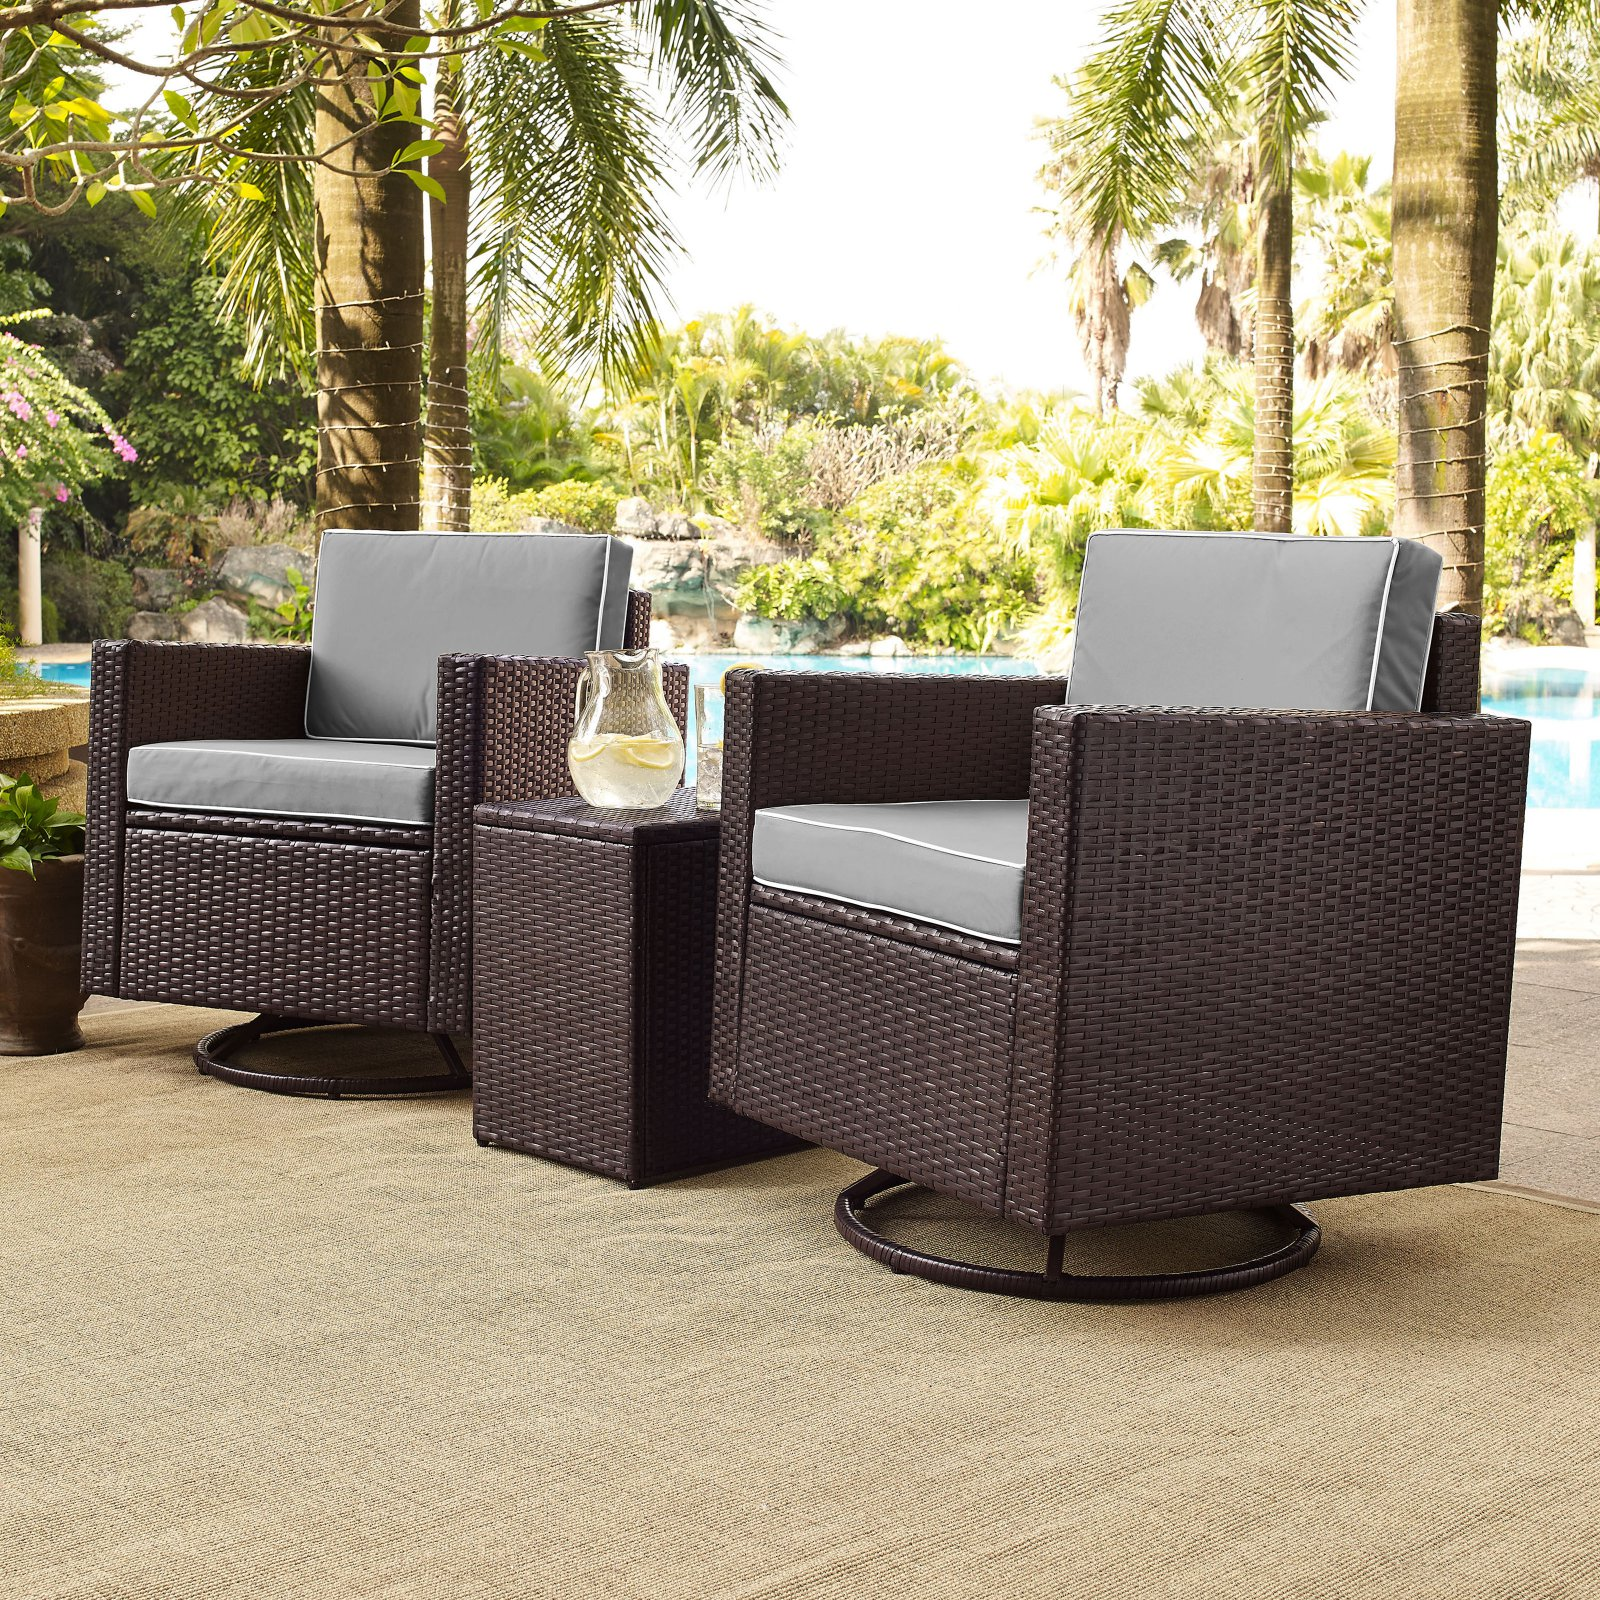 PALM HARBOR 3 PIECE OUTDOOR WICKER CONVERSATION SET WITH GREY CUSHIONS     TWO SWIVEL